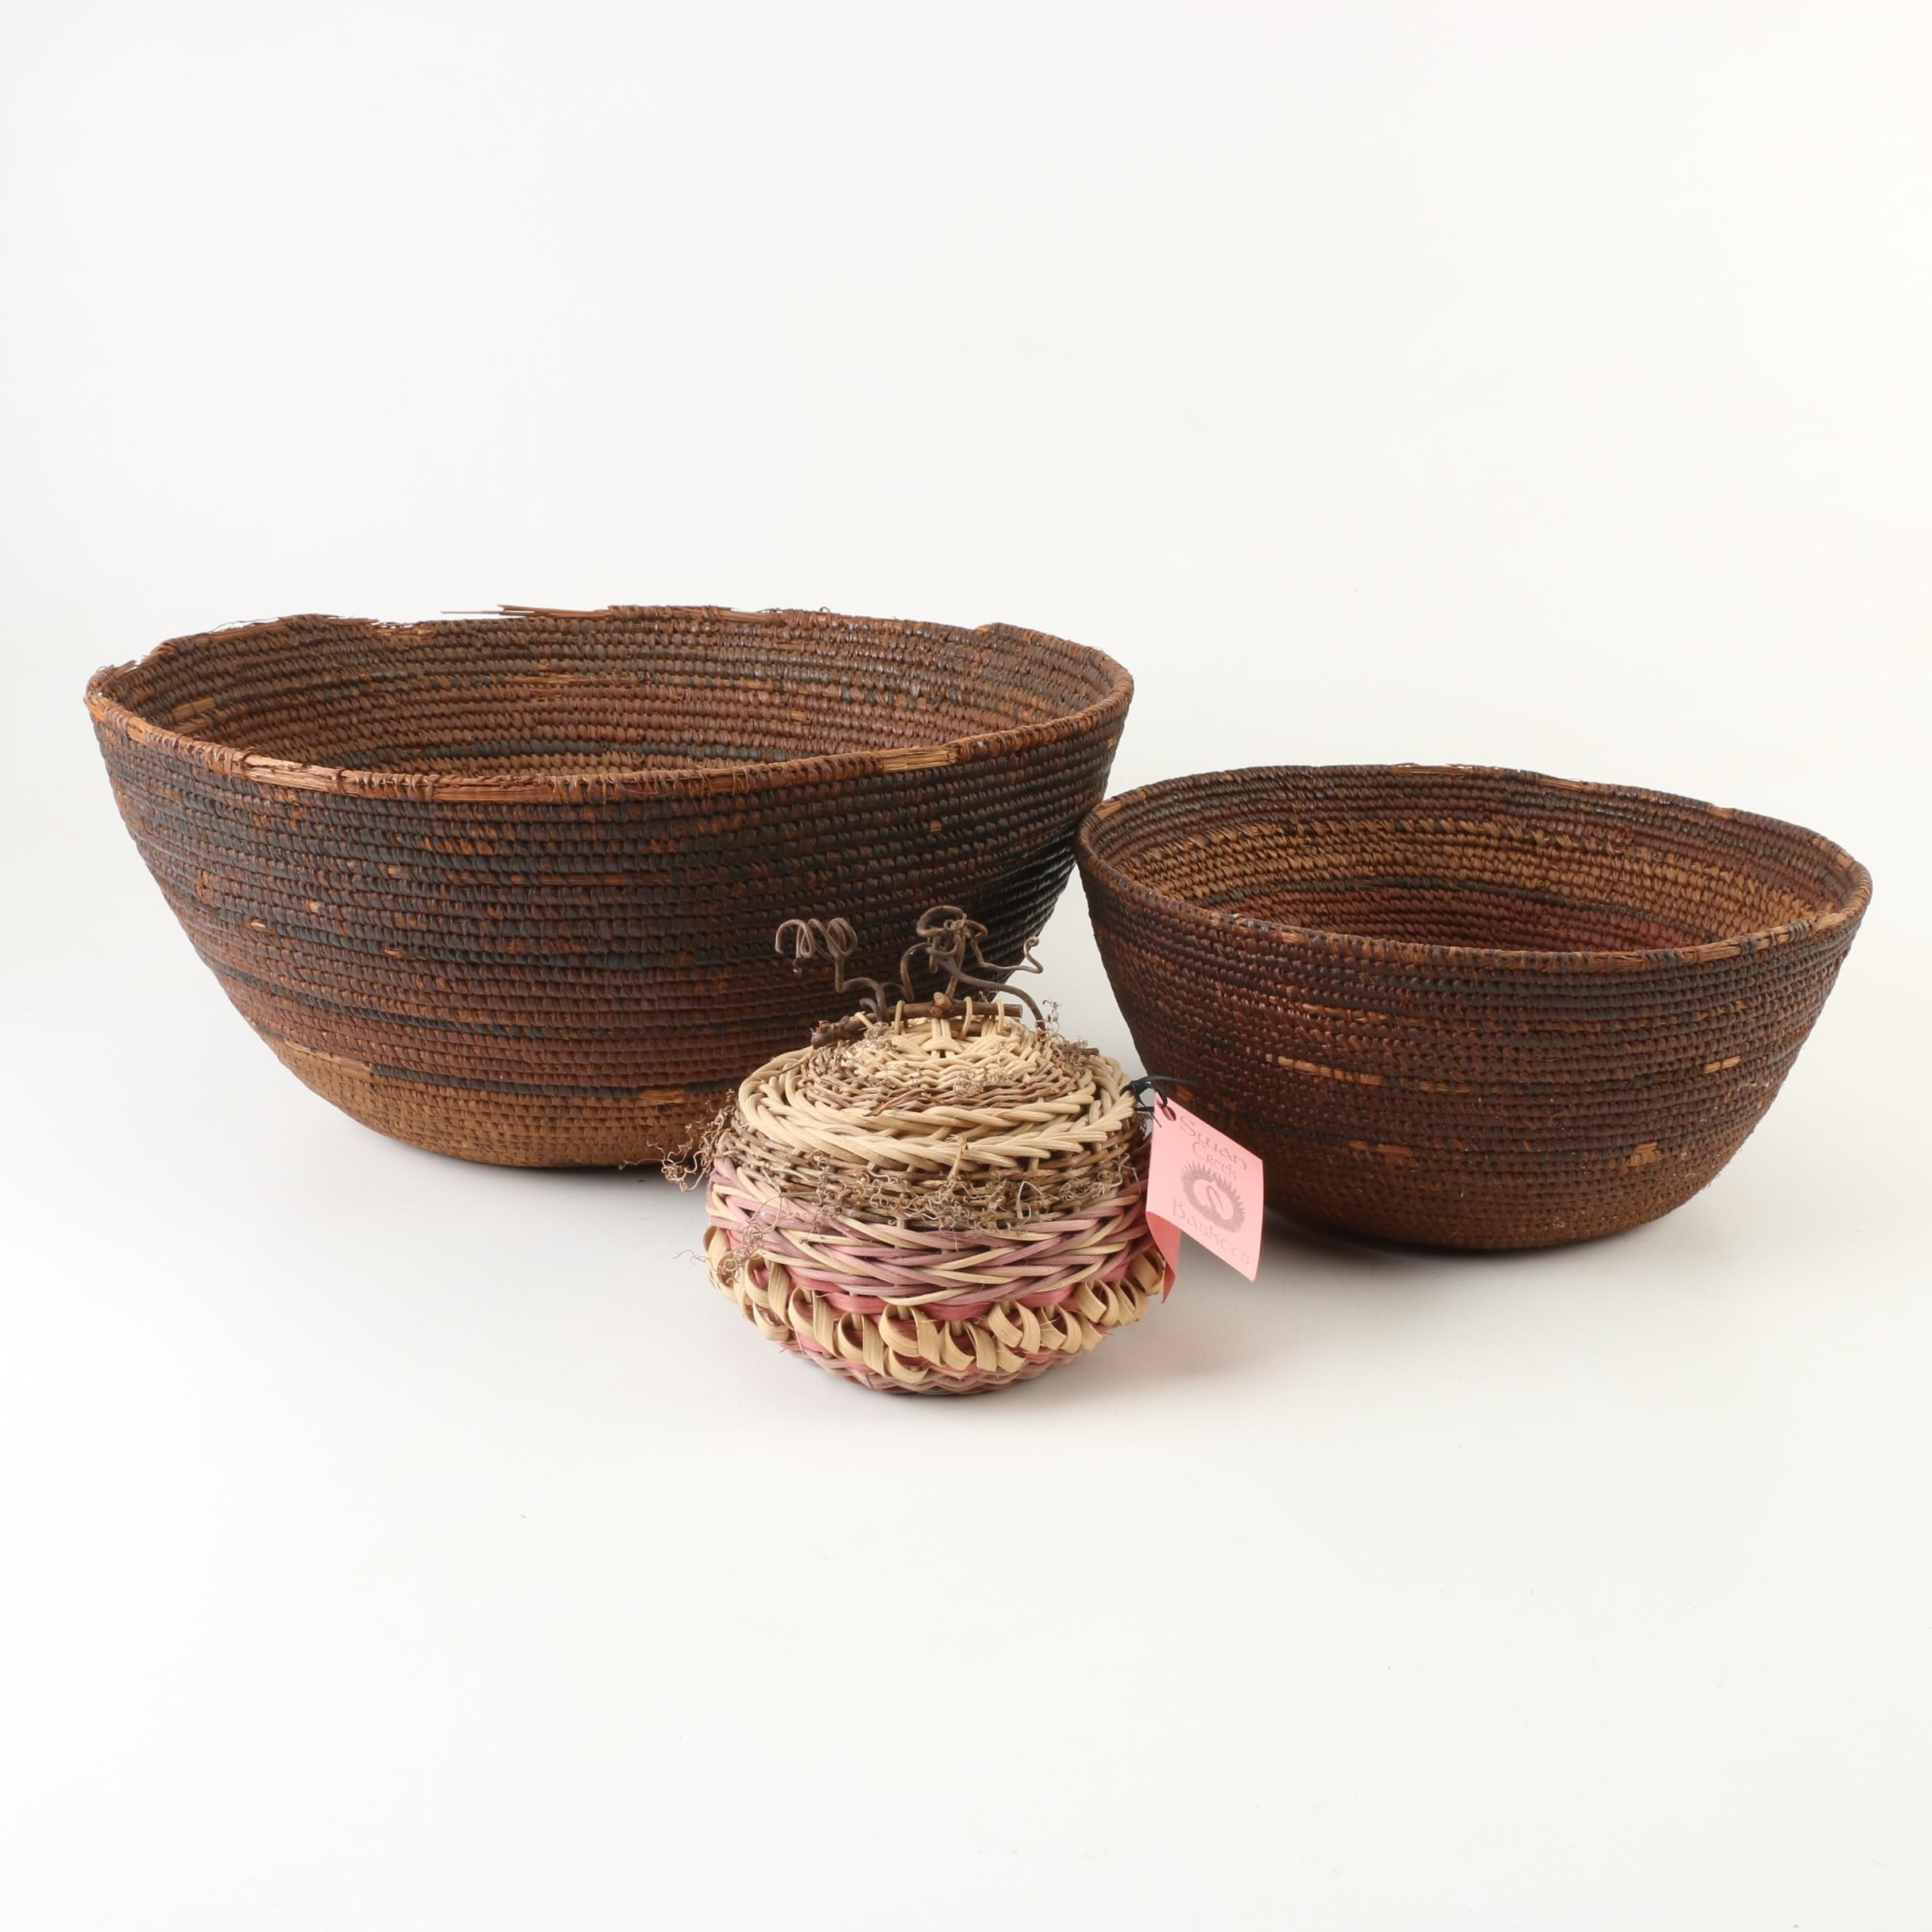 Semi-Antique Woven Coil Baskets with Swan Creek Lidded Basket